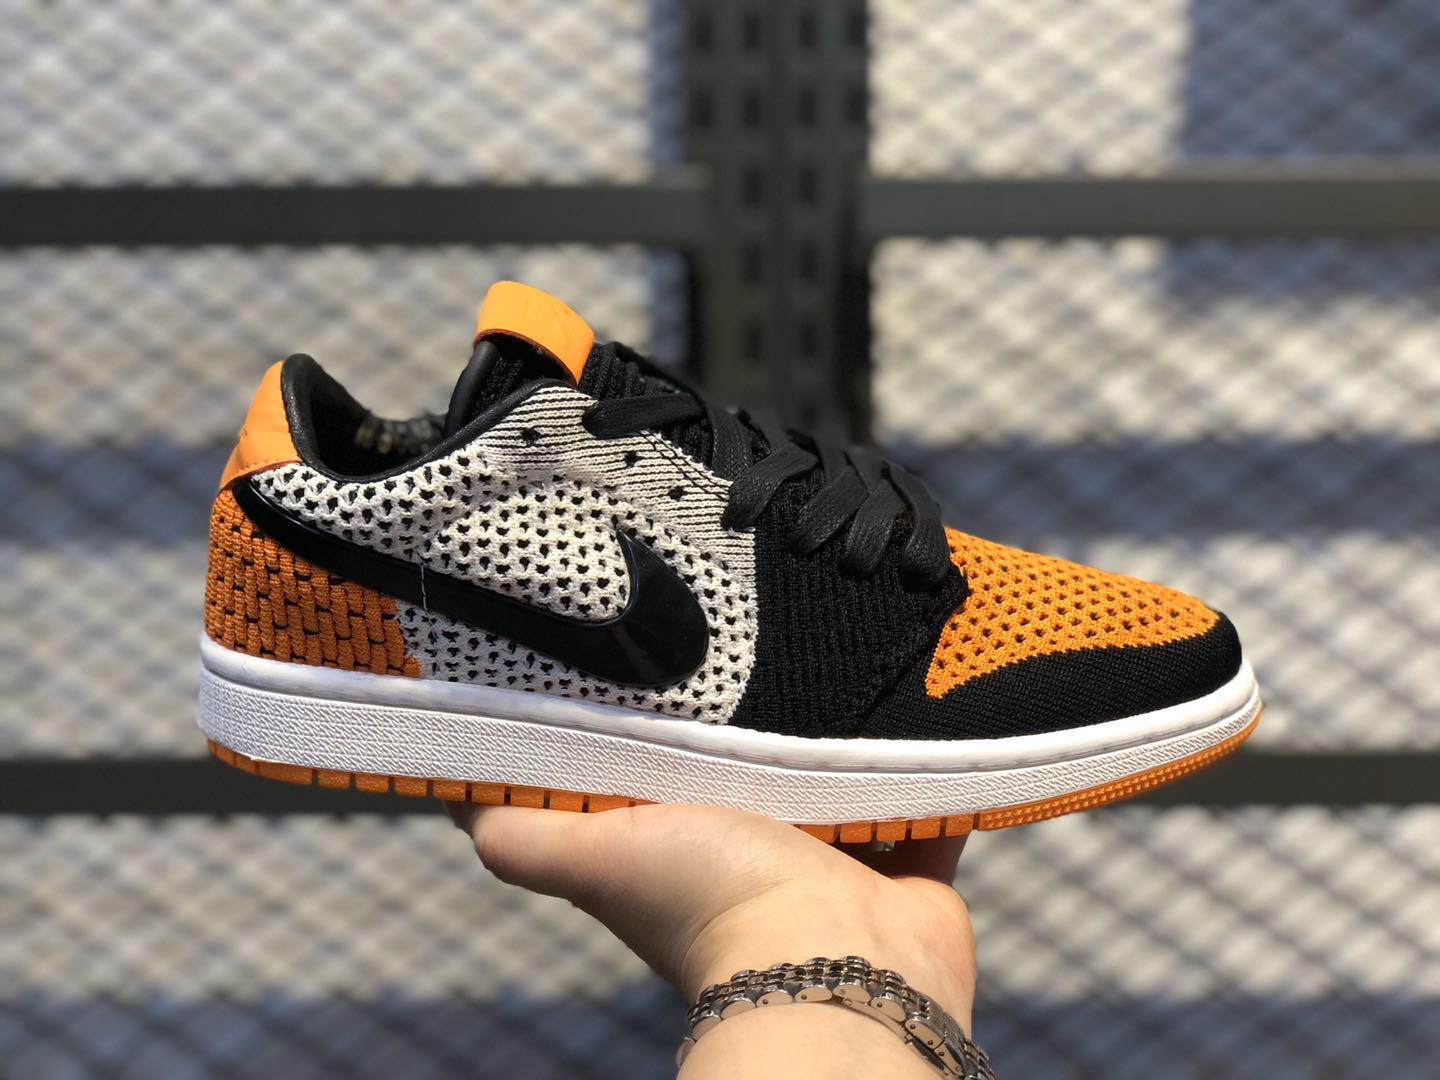 Air Jordan 1 Retro low Flyknit Shattered Backboard AH4506-100